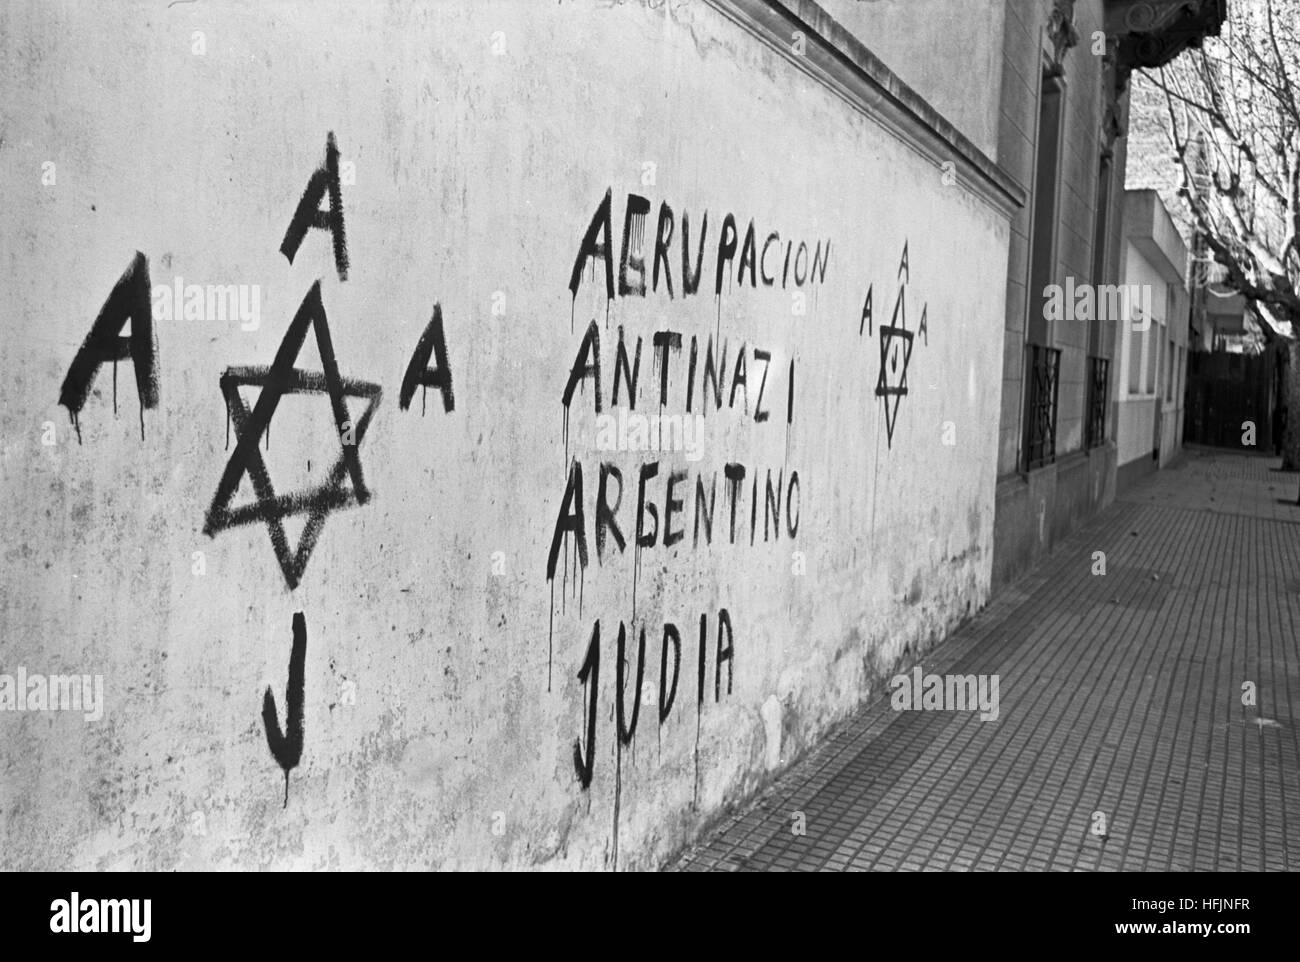 Anti-Nazi graffiti in Buenos Aires, Argentina, 1962. Far rights groups had been painting swastikas around Buenos - Stock Image